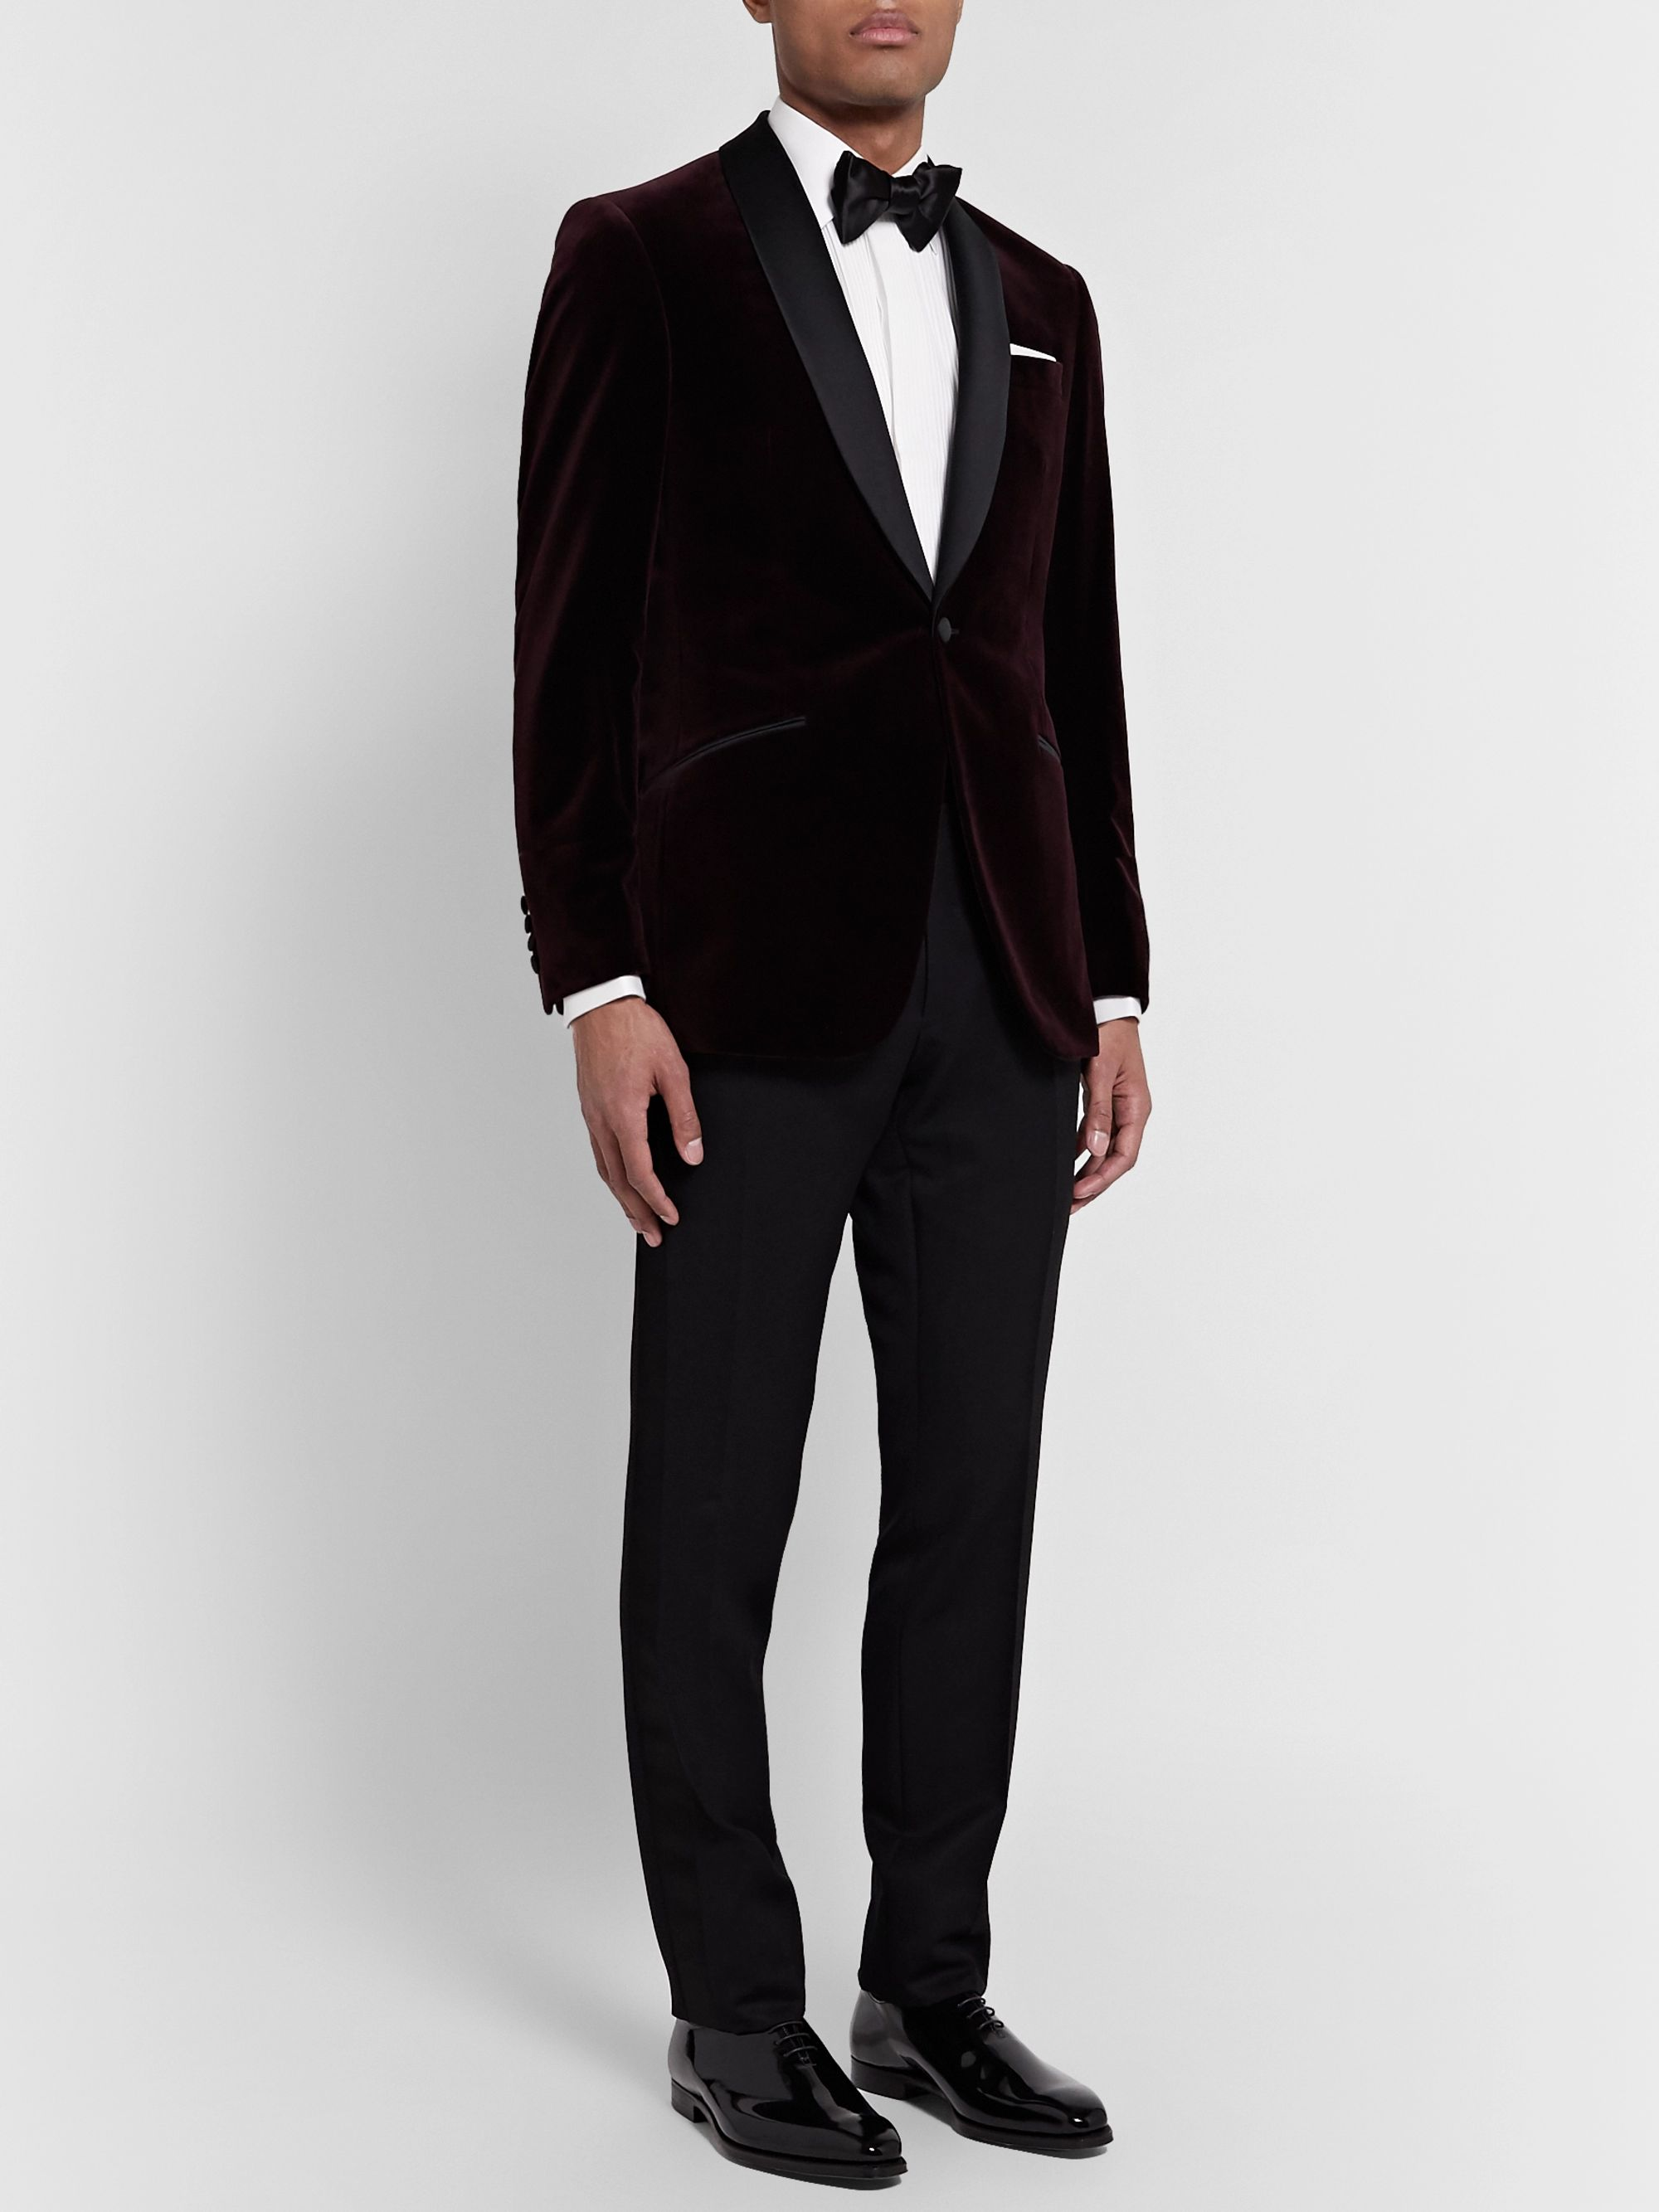 Richard James Burgundy Slim-Fit Shawl-Collar Satin-Trimmed Cotton-Velvet Tuxedo Jacket